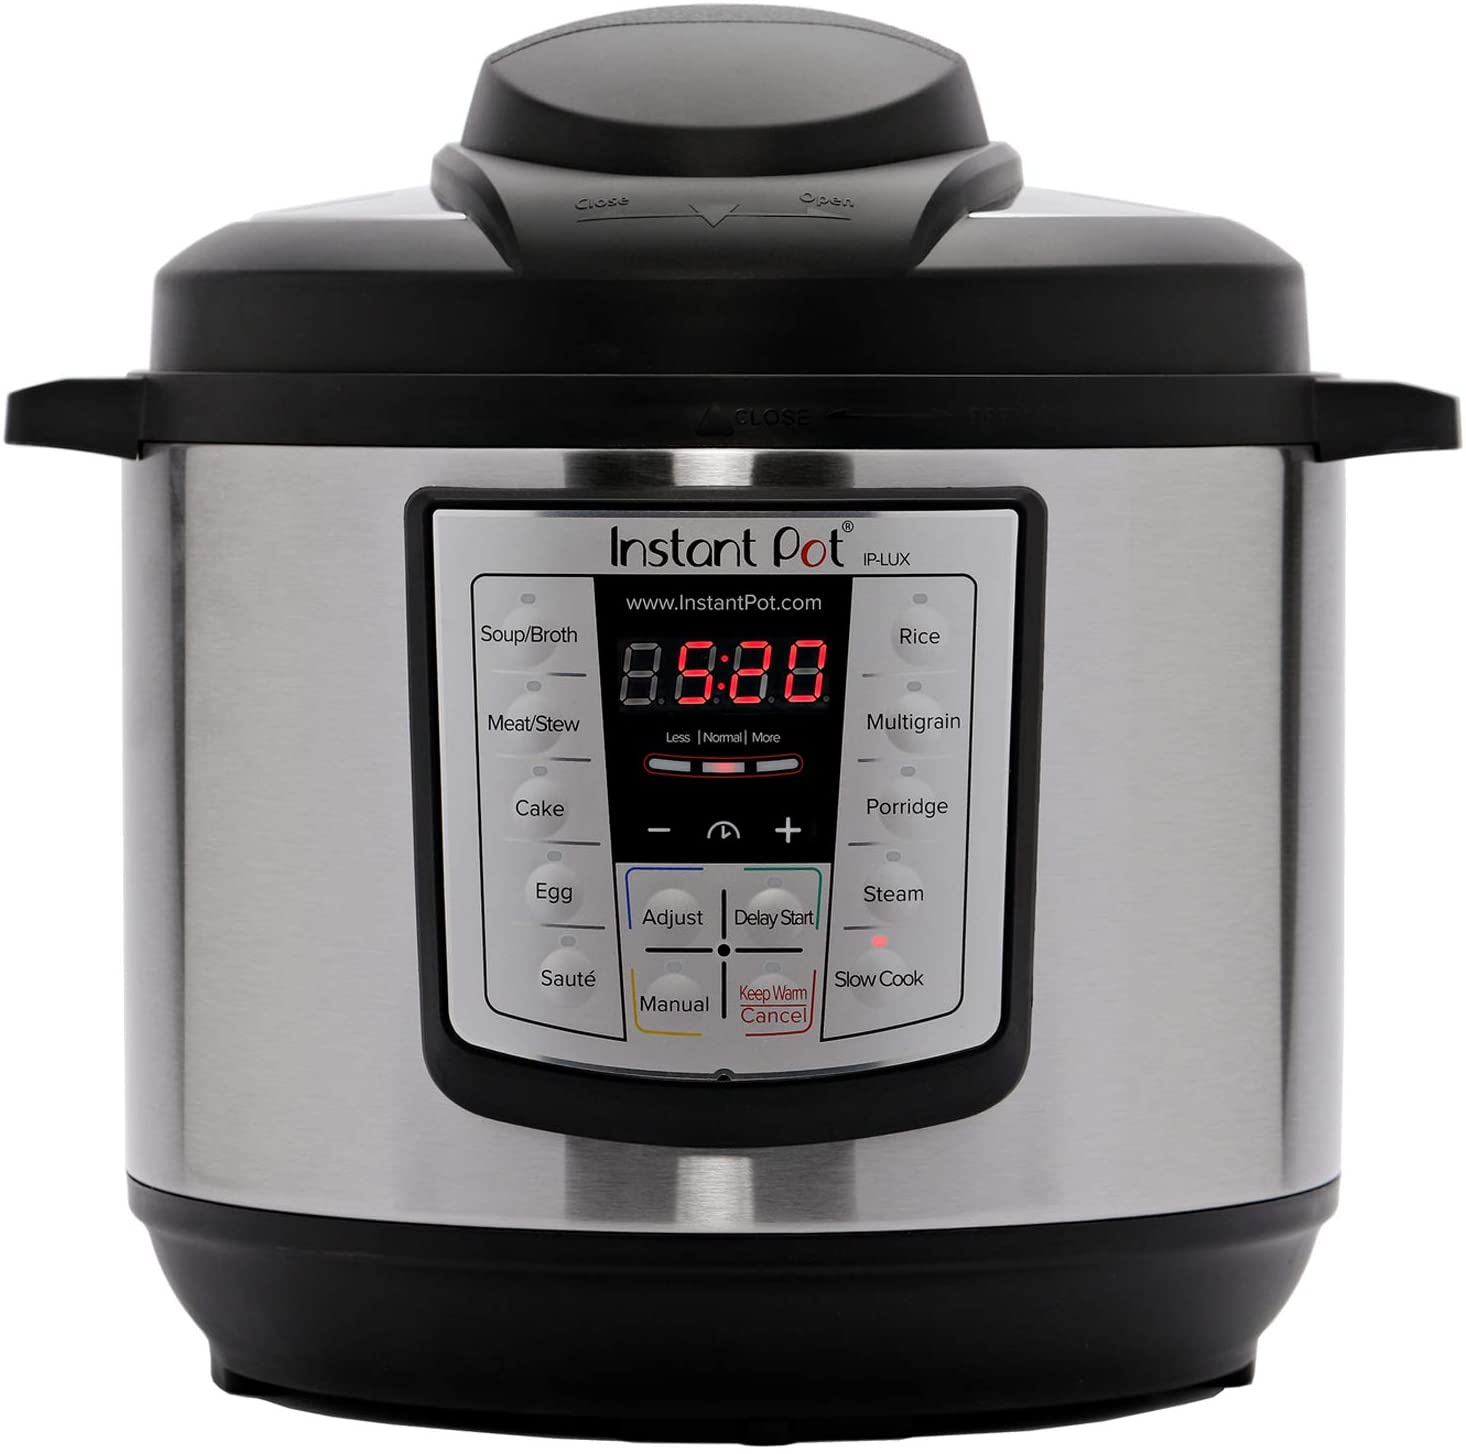 6-in-1 Electric Pressure Cooker, Sterilizer Slow Cooker, Rice Cooker, Steamer, Saute, and Warmer, 6 Quart